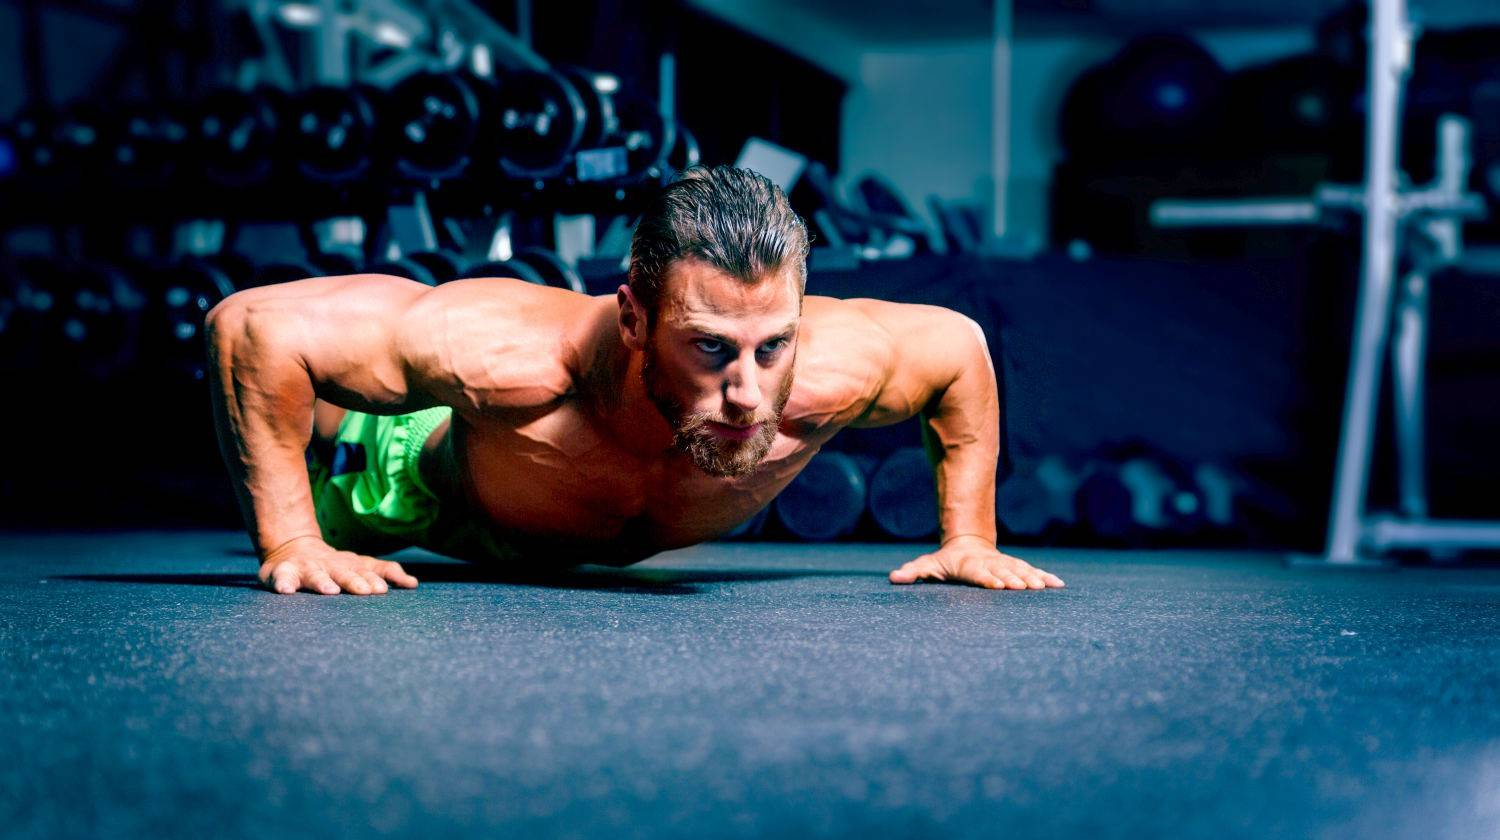 Ambassador Tim McComsey doing wide angled pushup | The Best Super High-Rep Training With HIIT 100s Workout | Featured | hiit workouts with weights